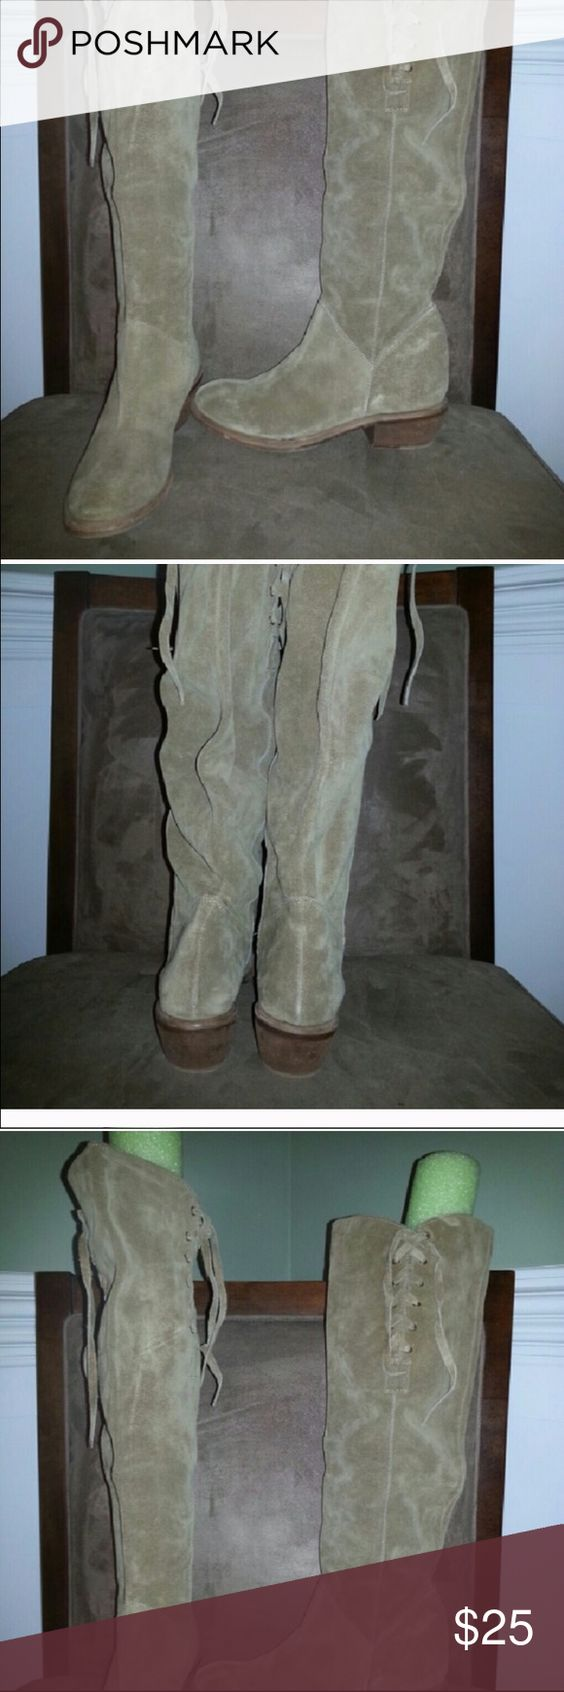 BX for Bronx Knee High Boots Beige knee high, cowboy style boots. Lace (for show) at the top portion of boot. Suede upper that slouches and wood sole. Worn only twice. BX for Bronx Shoes Over the Knee Boots